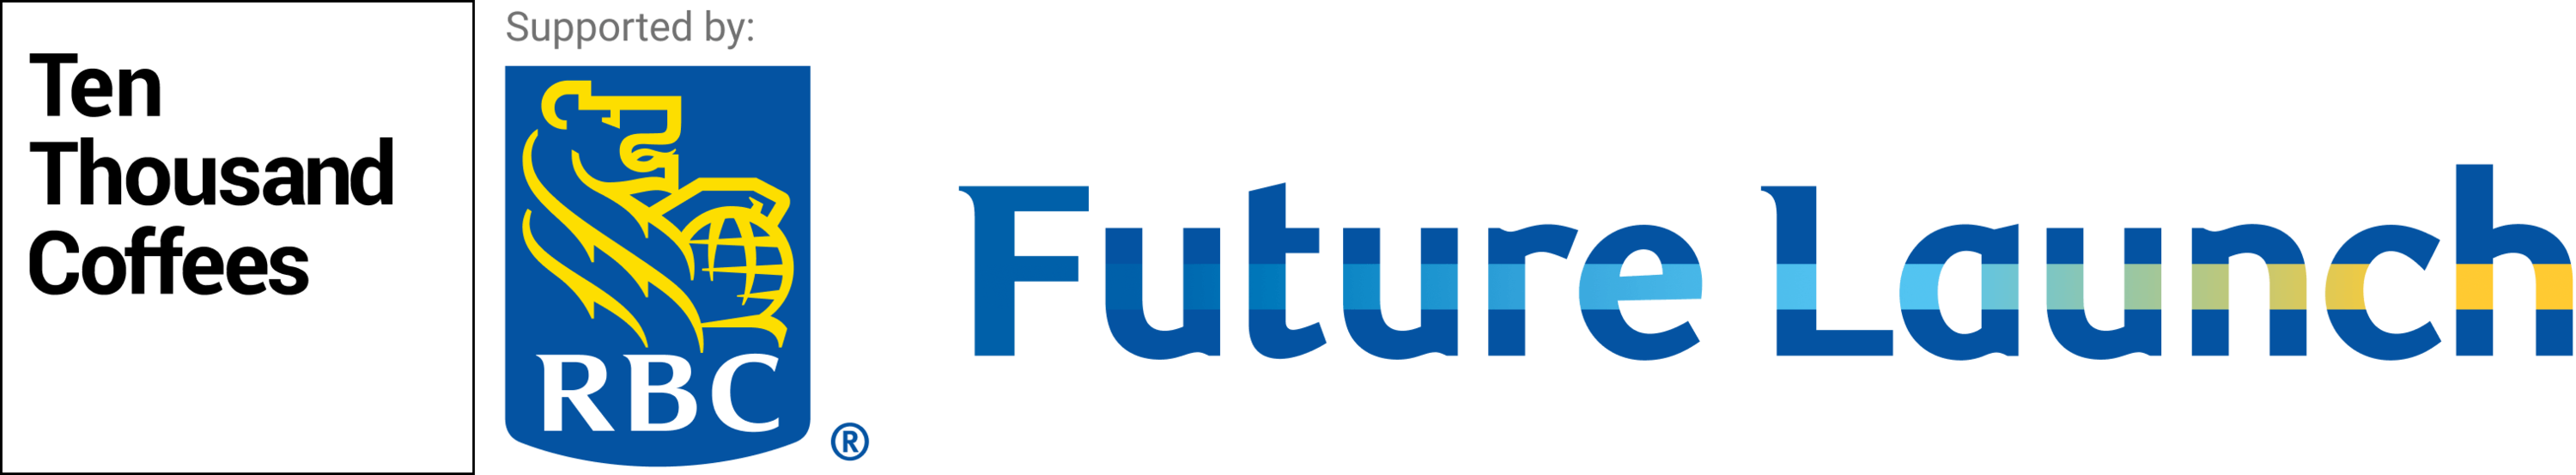 RBC Future Launch + 10KC logo lockup